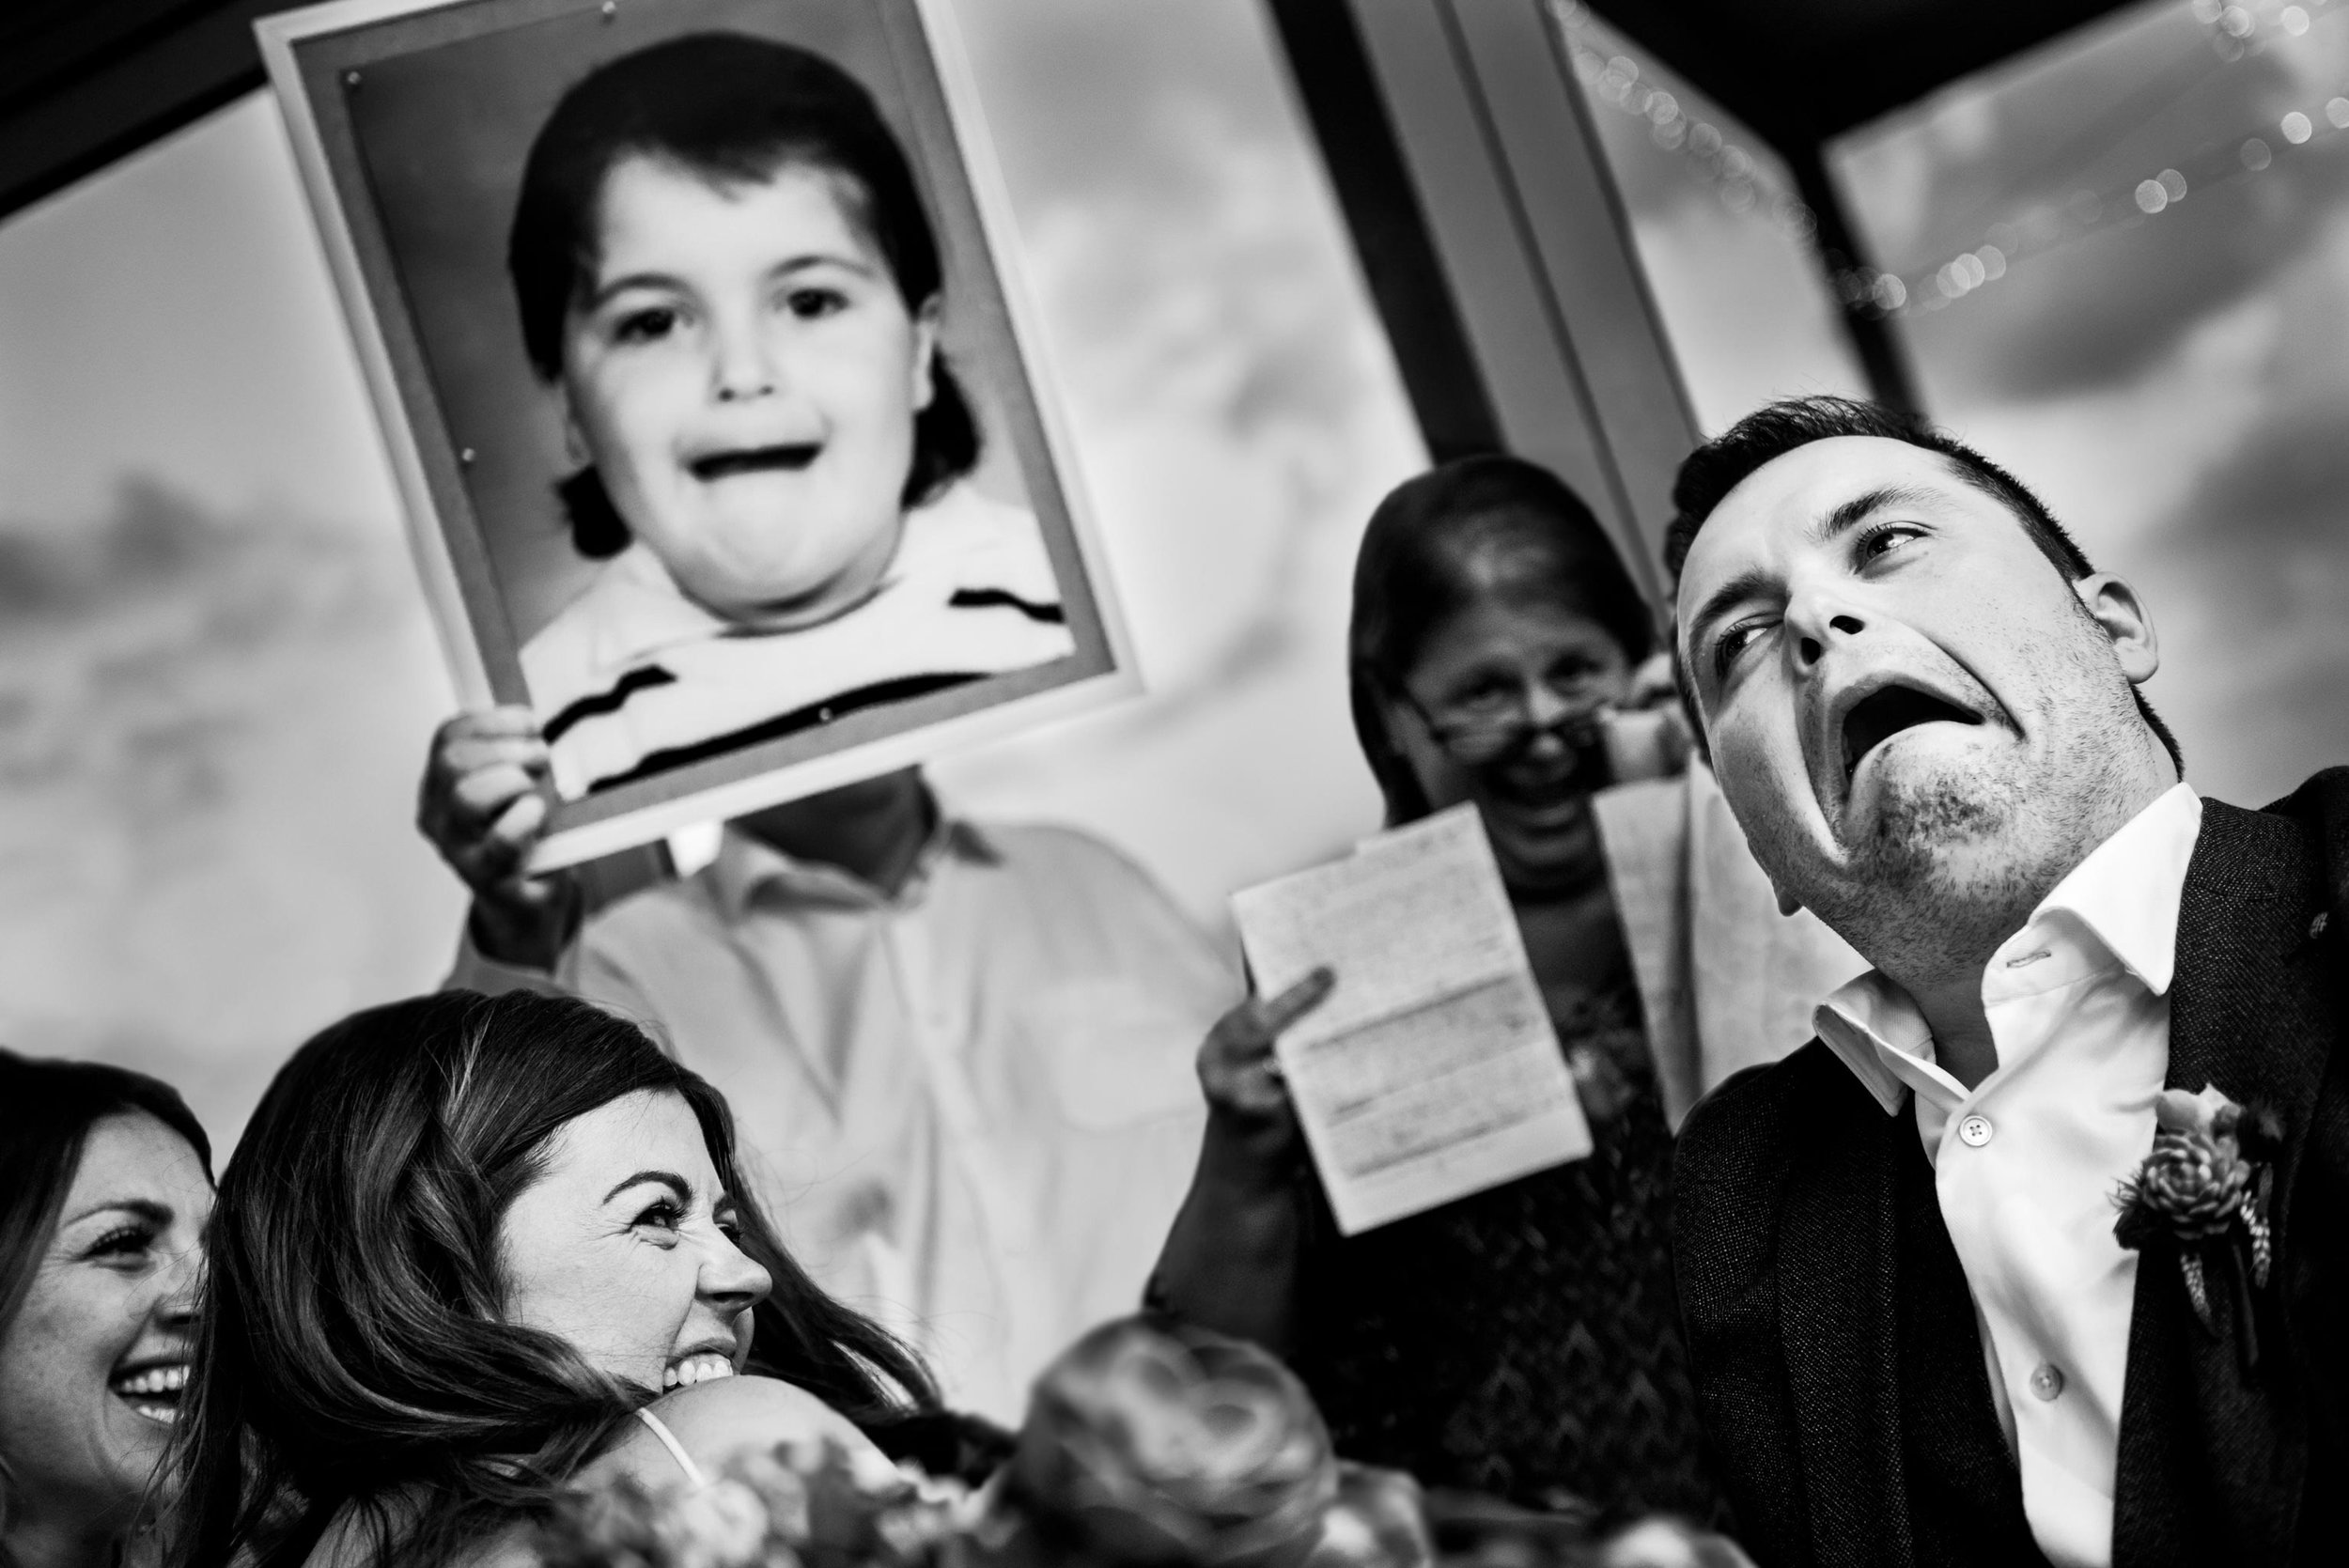 Groom making hilarious face trying to replicate a school photo of himself during father's speech